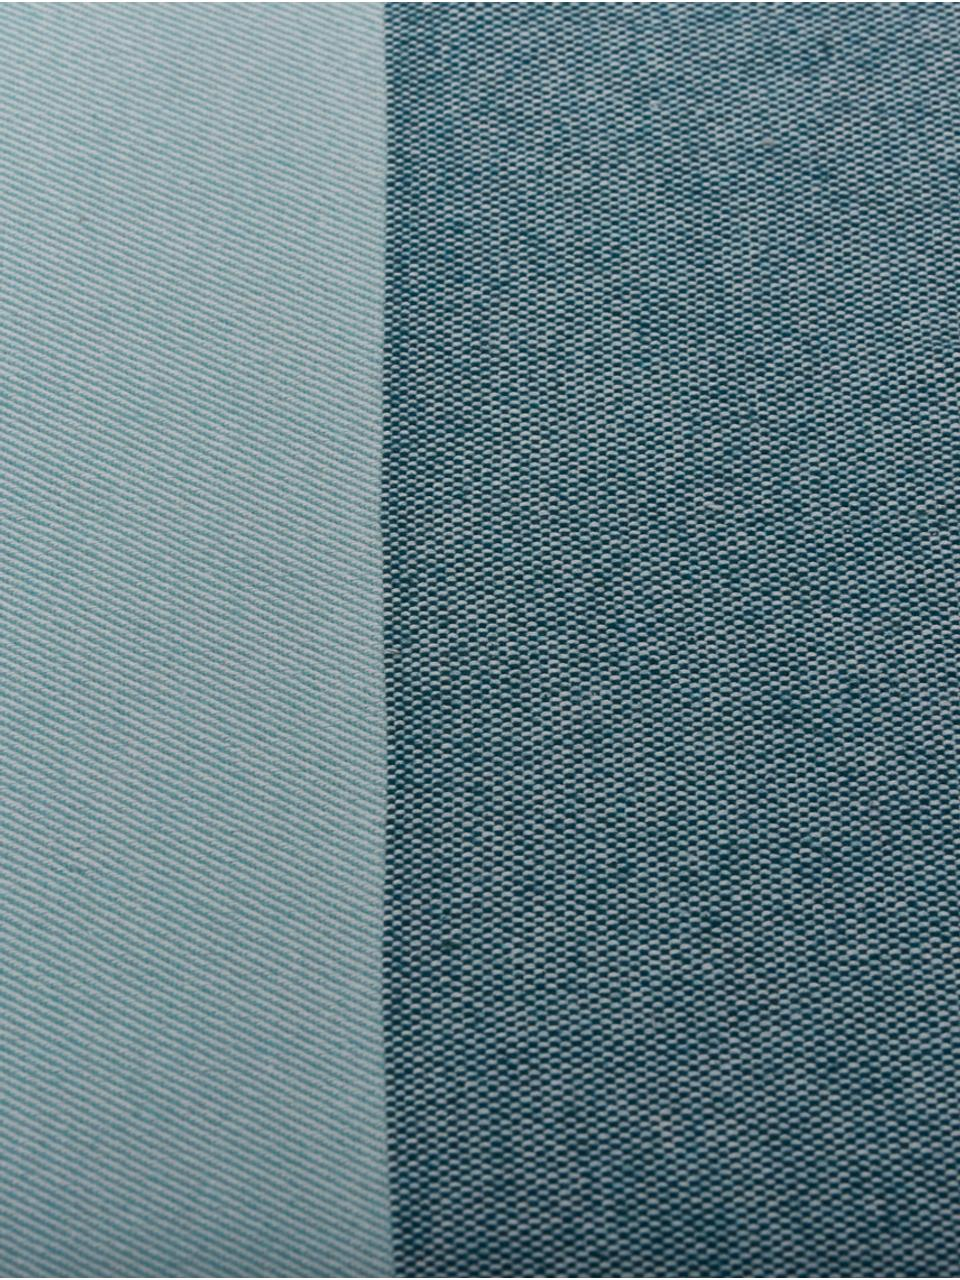 Plaid a righe Stripes, 50% cotone, 50% poliacrilico, Toni blu, Larg. 150 x Lung. 200 cm